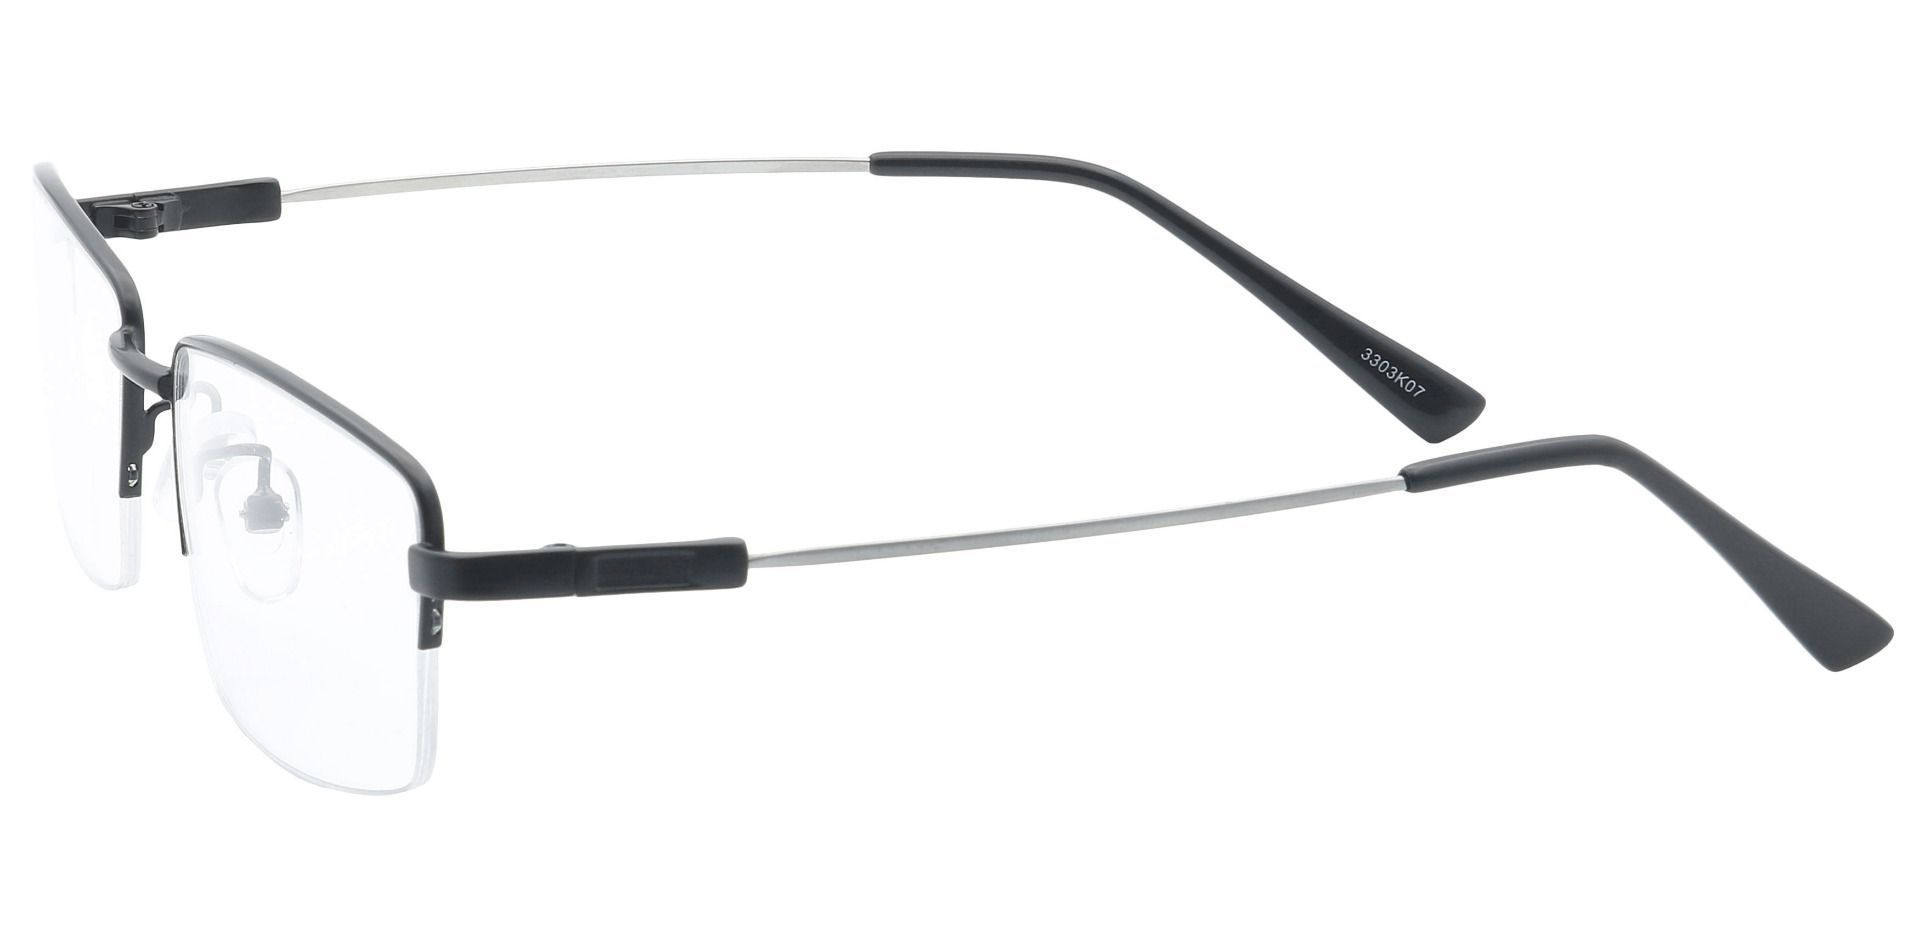 Zander Rectangle Lined Bifocal Glasses - Black